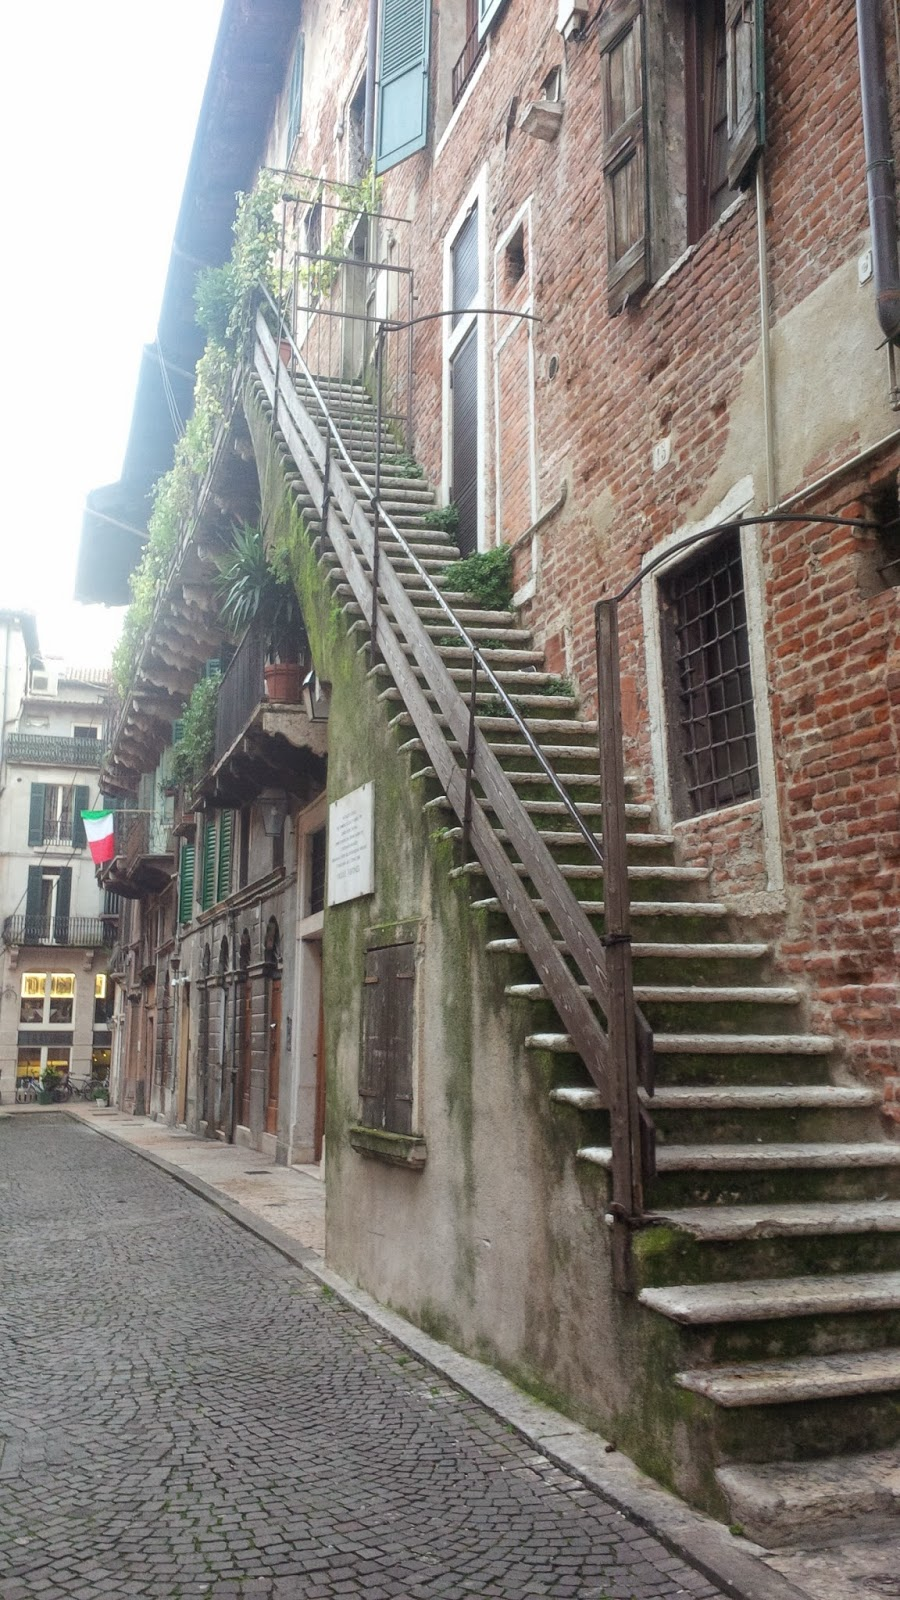 Super long outside staircase of a house in Verona